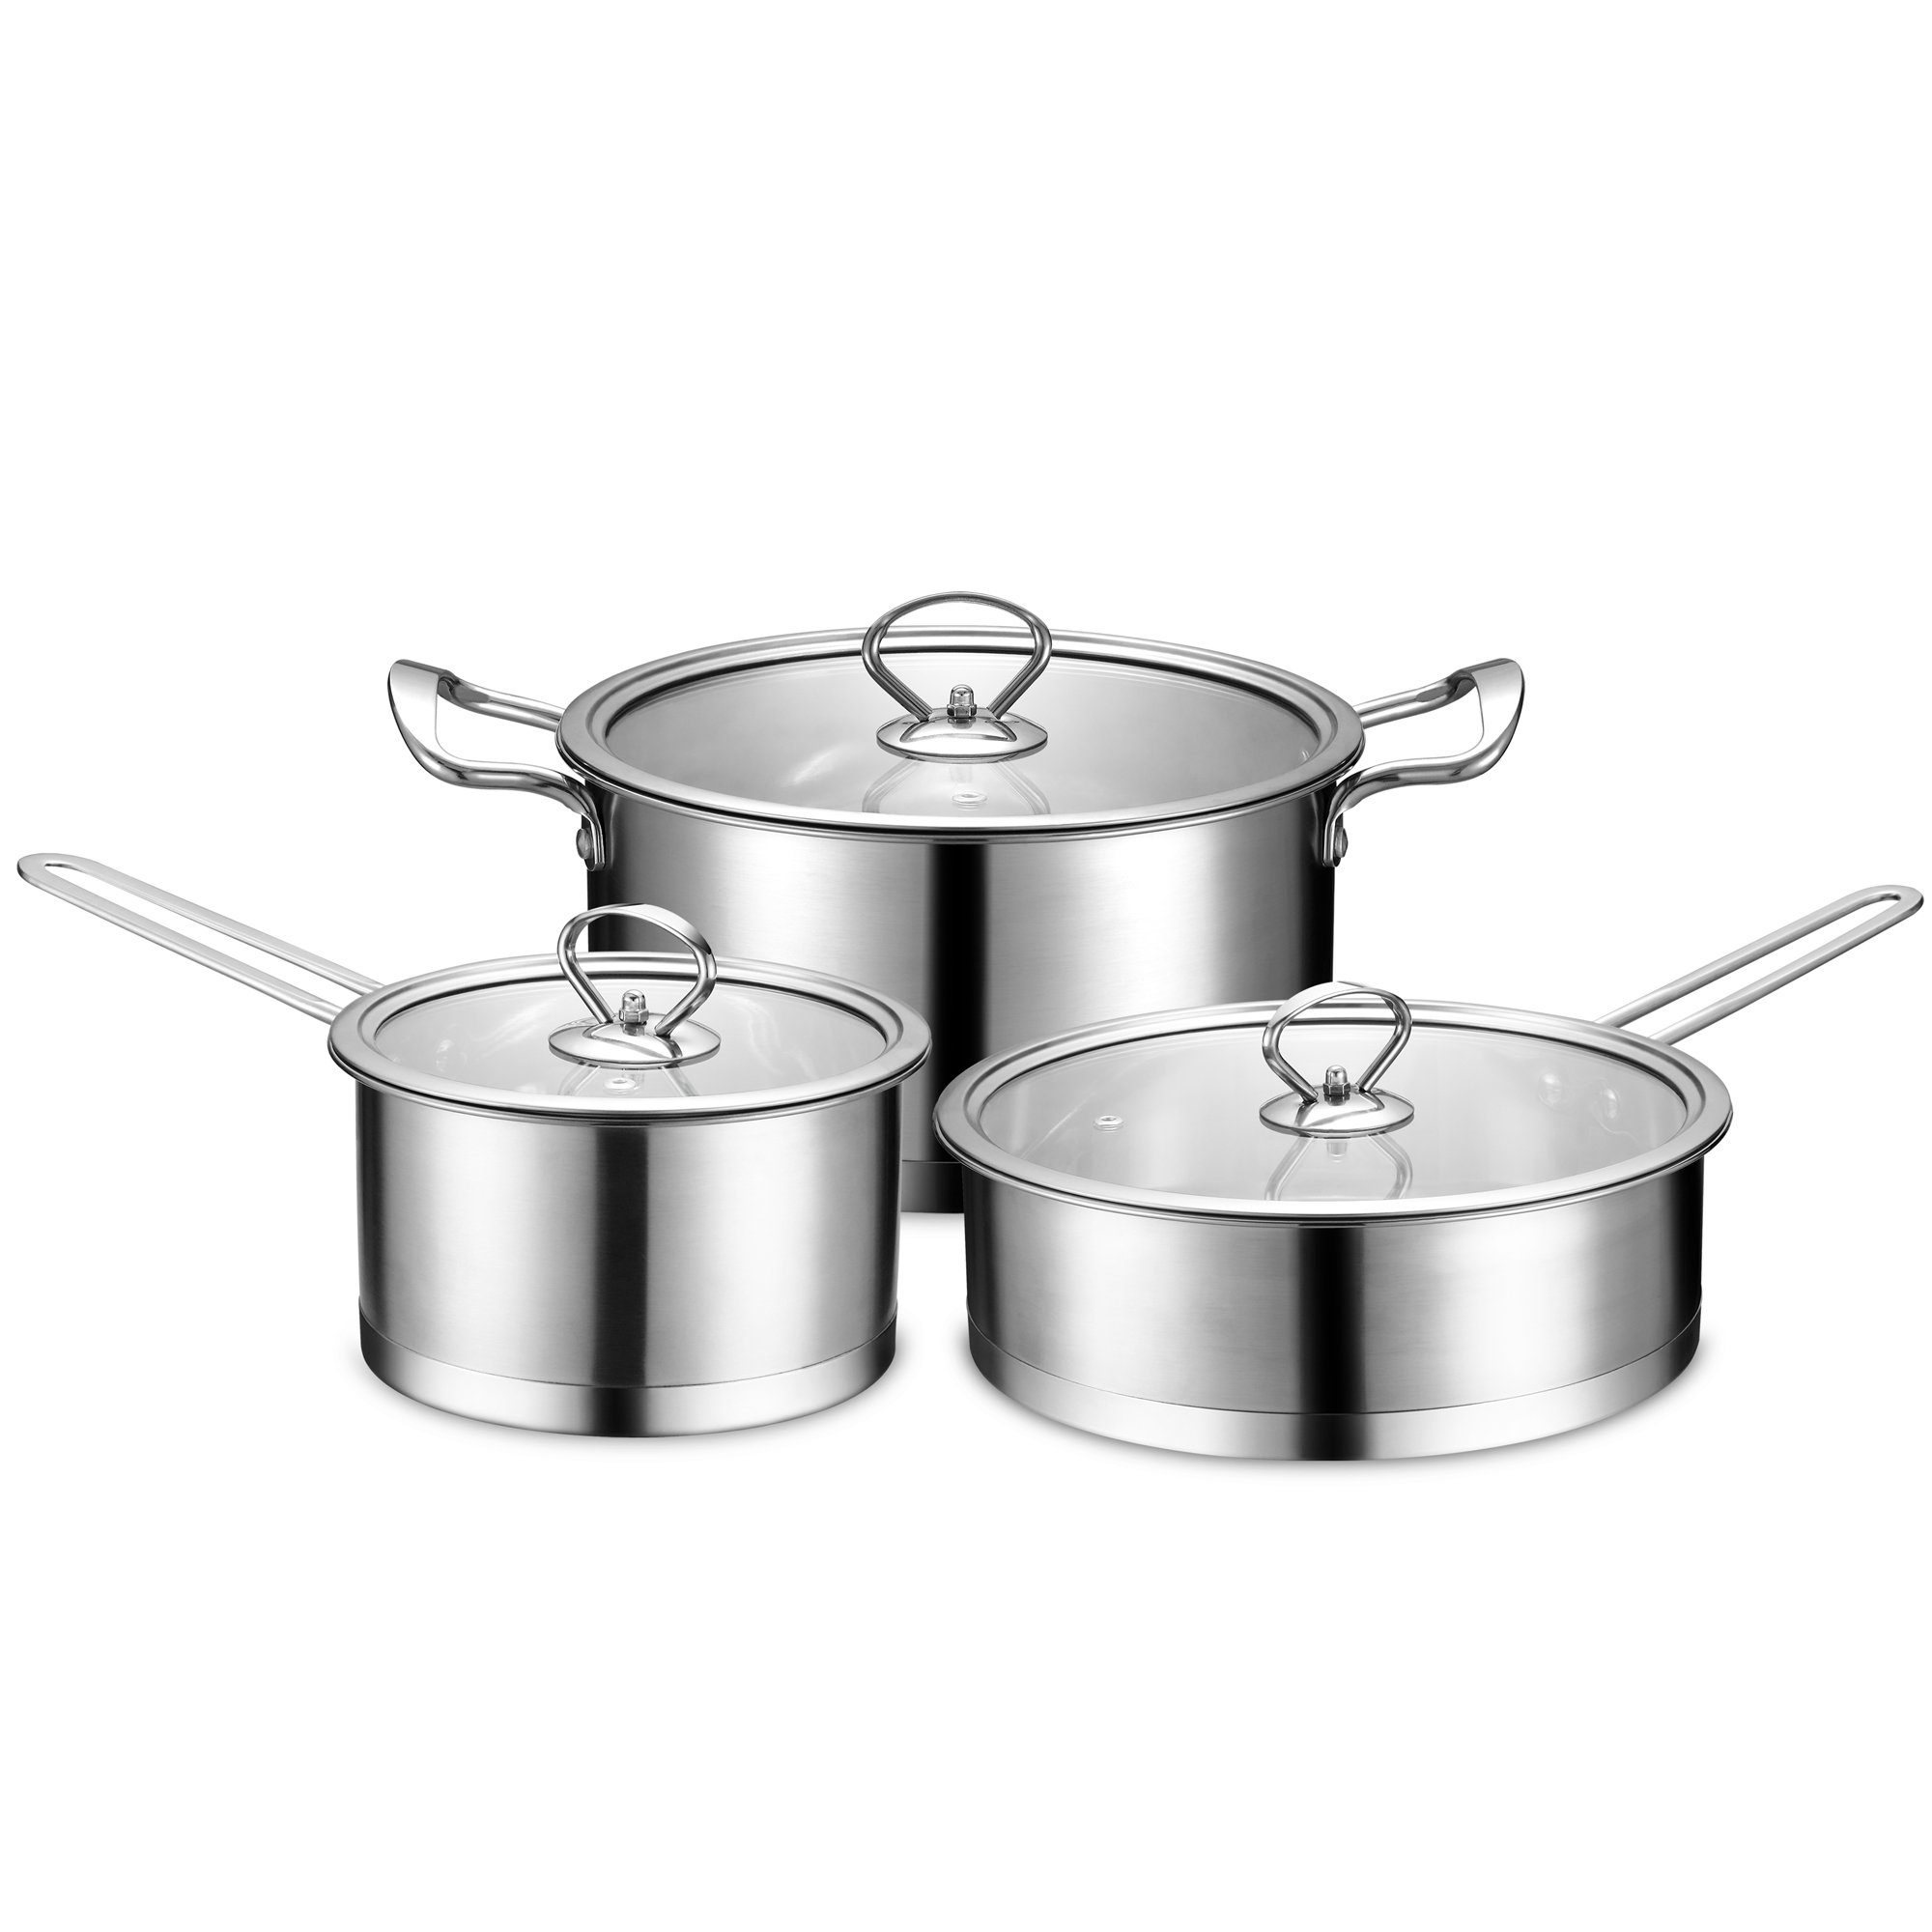 BINLIFA Stainless Steel Nonstick Tri-Ply Induction Ready Cookware Set 6 Piece,Silver by BINLIFA